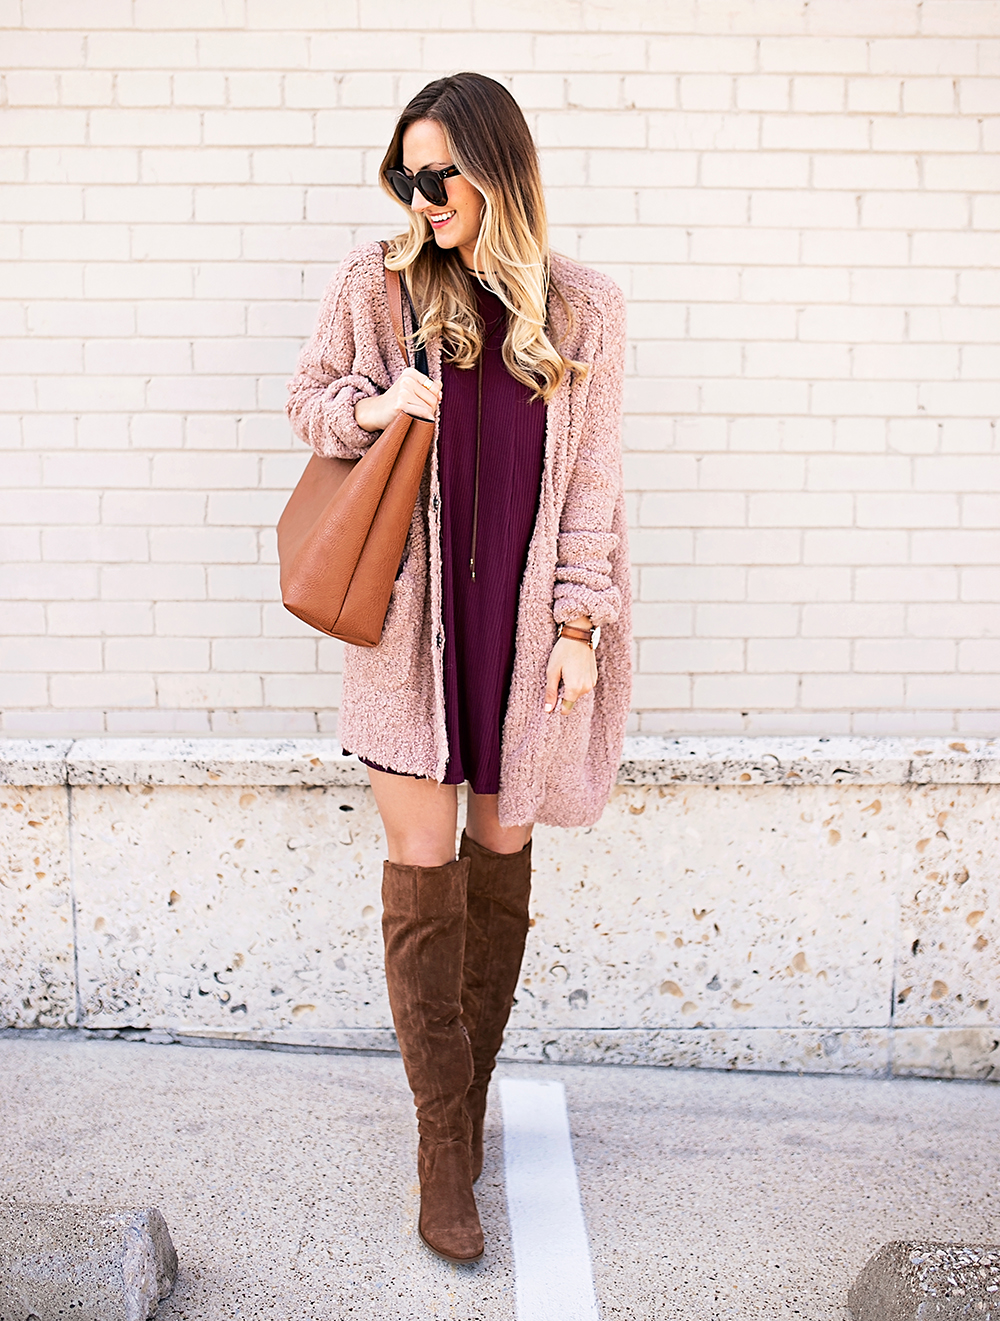 livvyland-blog-olivia-watson-cozy-fall-layers-dress-otk-boots-chunky-knit-cardigan-blush-pink-boho-outfit-2